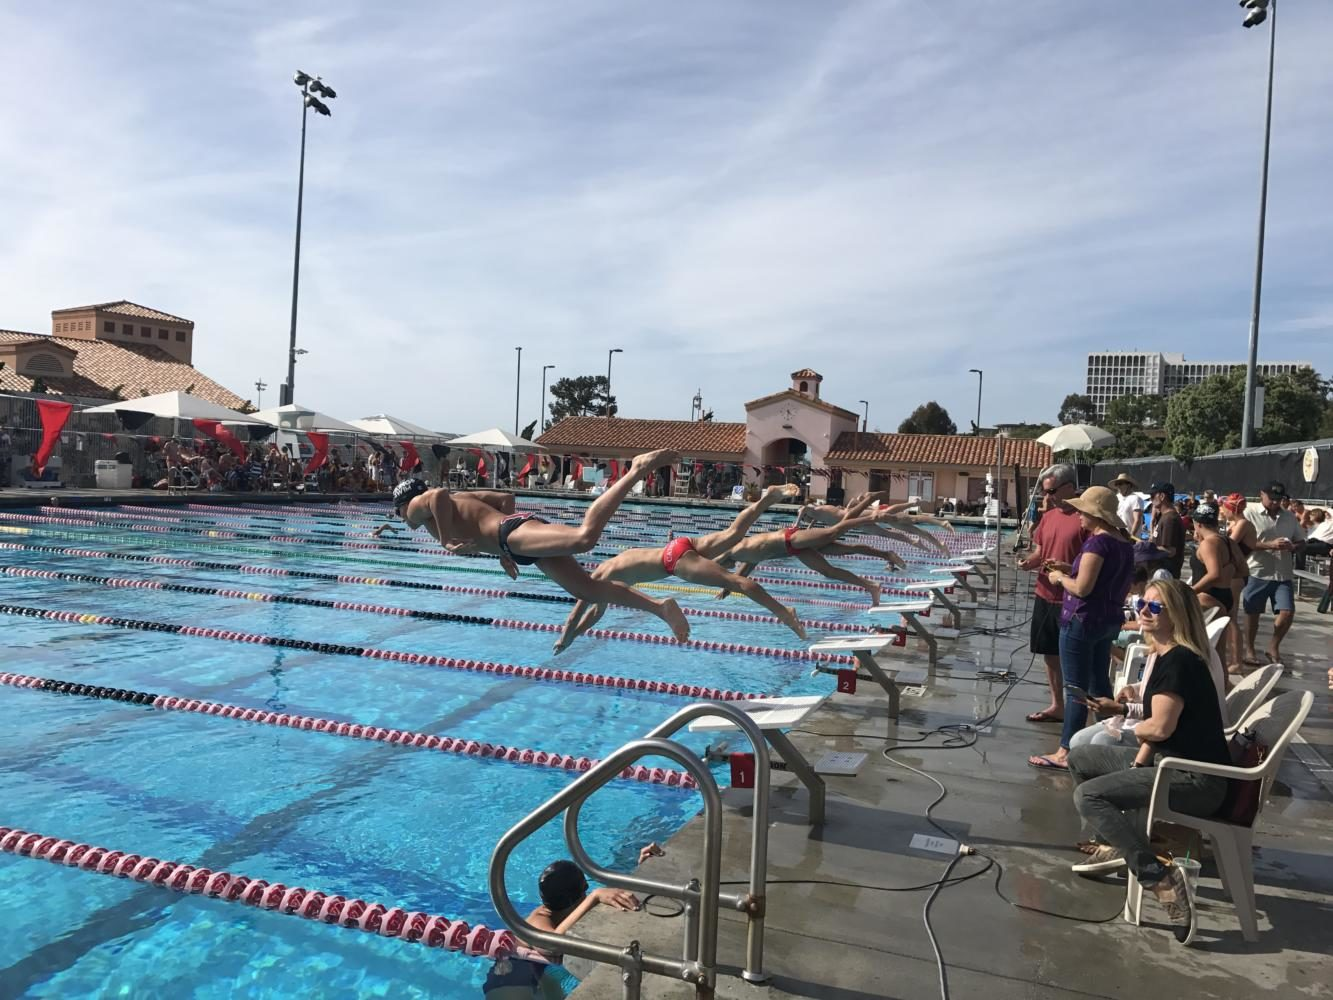 The+cathedral+Catholic+dons+varsity+swim+team+ended+the+regular+season+last+Friday+with+an+away+win+over+La+Jolla+high+school.+By+Tripp